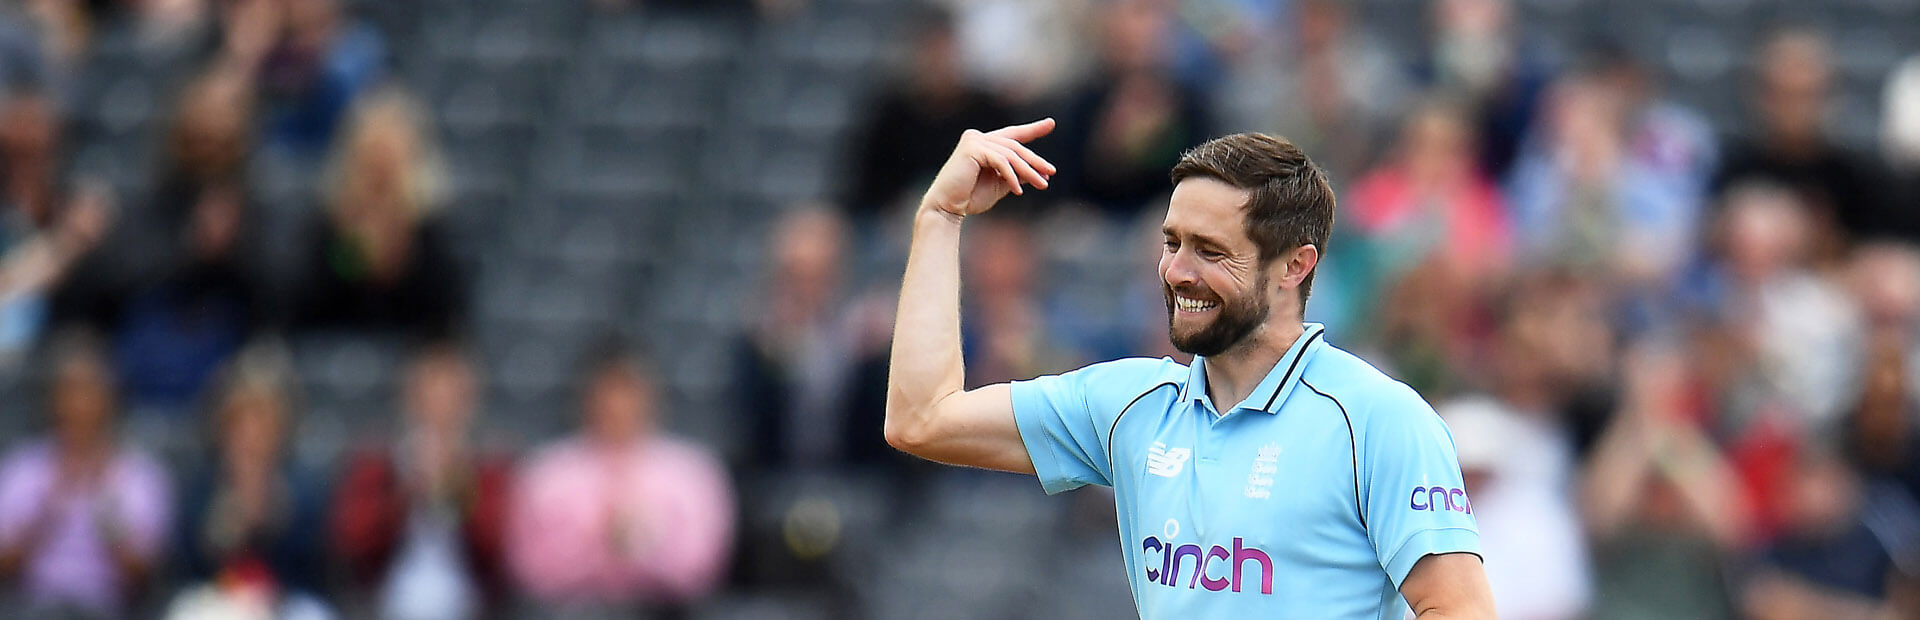 Woakes attains career-best third position in MRF Tyres ICC Men's ODI Player Rankings